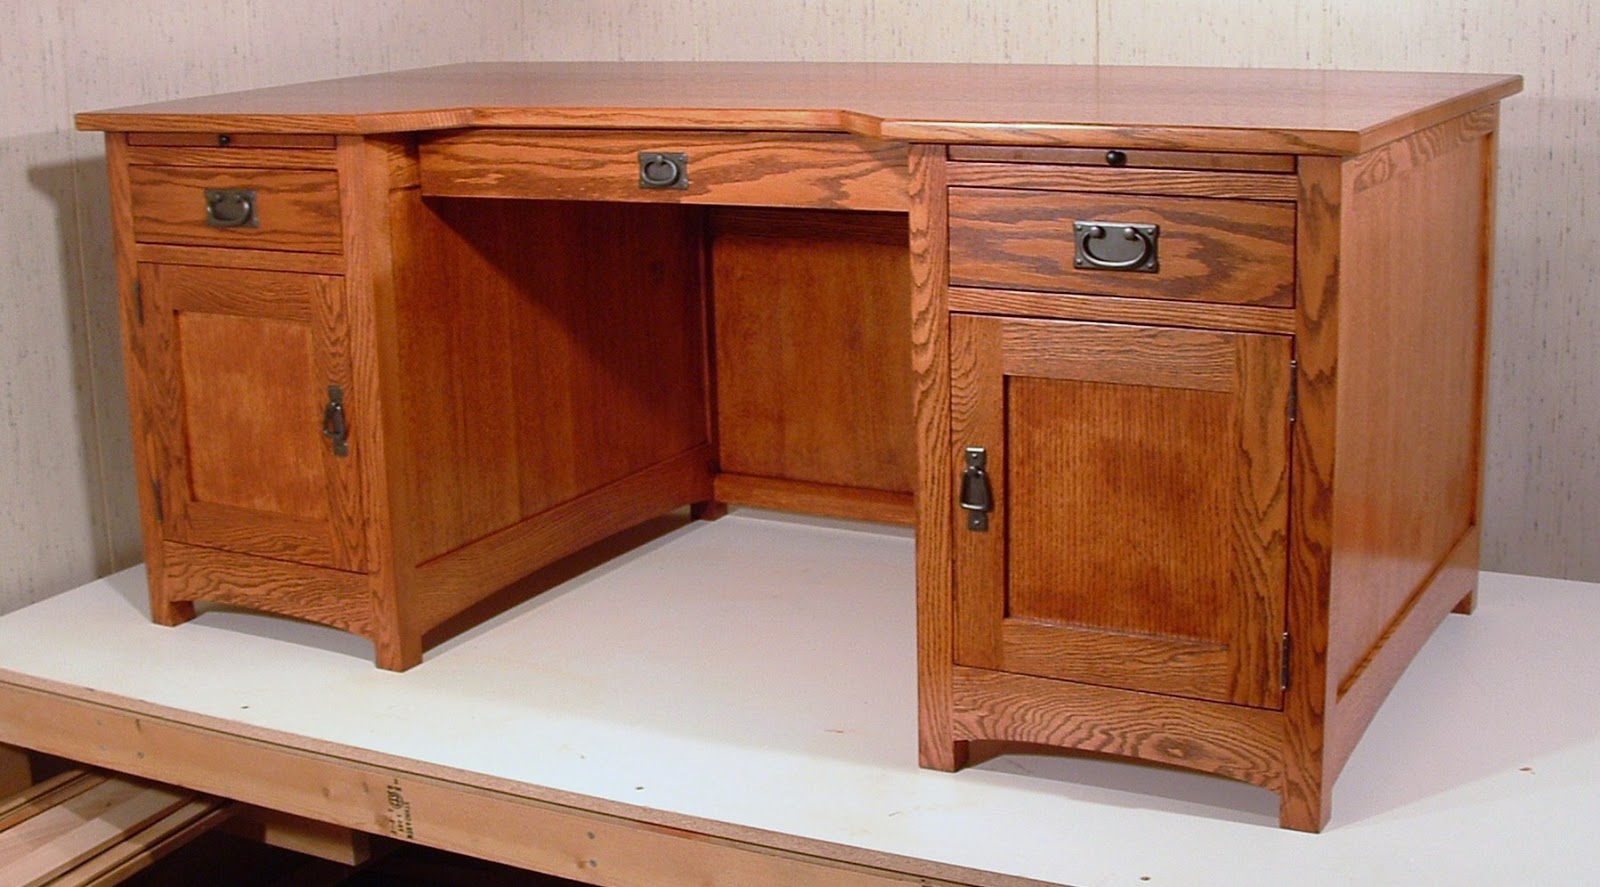 Furniture Manufacturer In Malaysia: Wood Commonly Used For